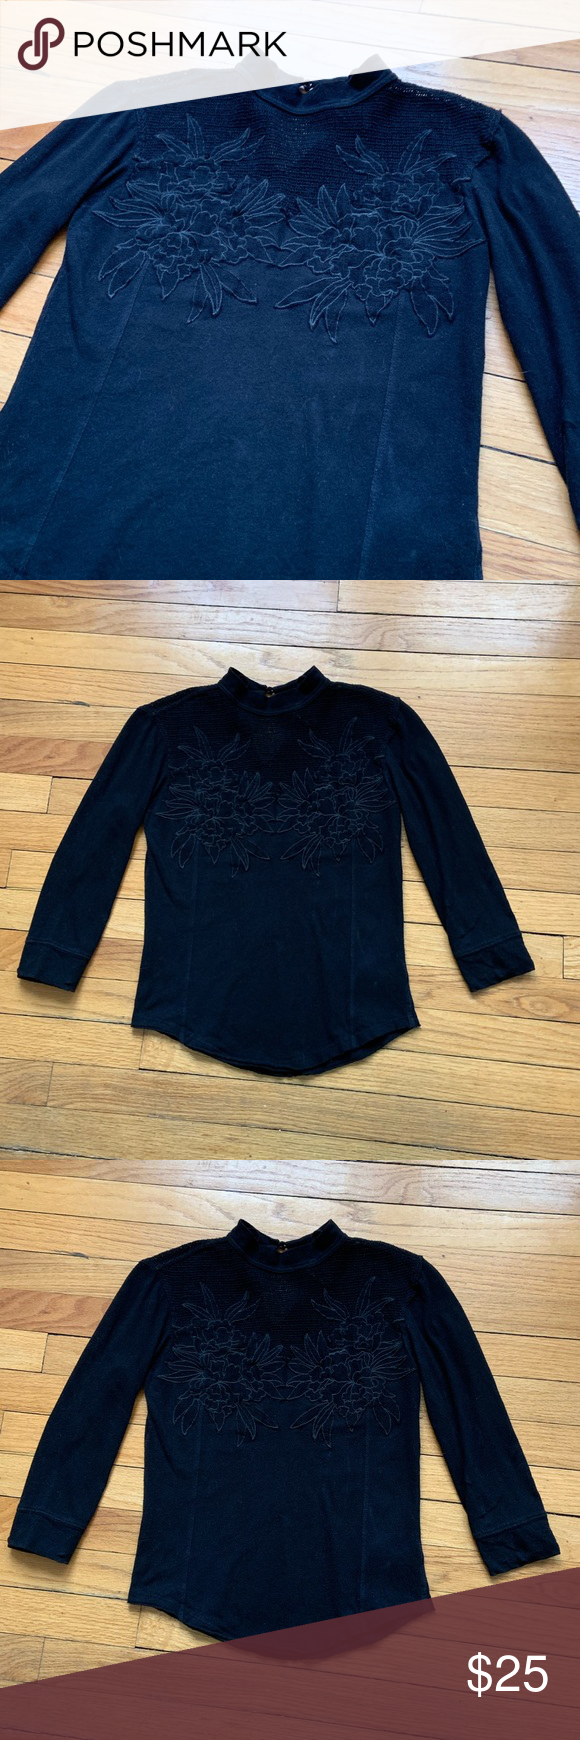 558b0fa1f8ed1a FREE PEOPLE Black Embroidered long sleeve blouse S This beautiful Free  People Blouse features a subtle